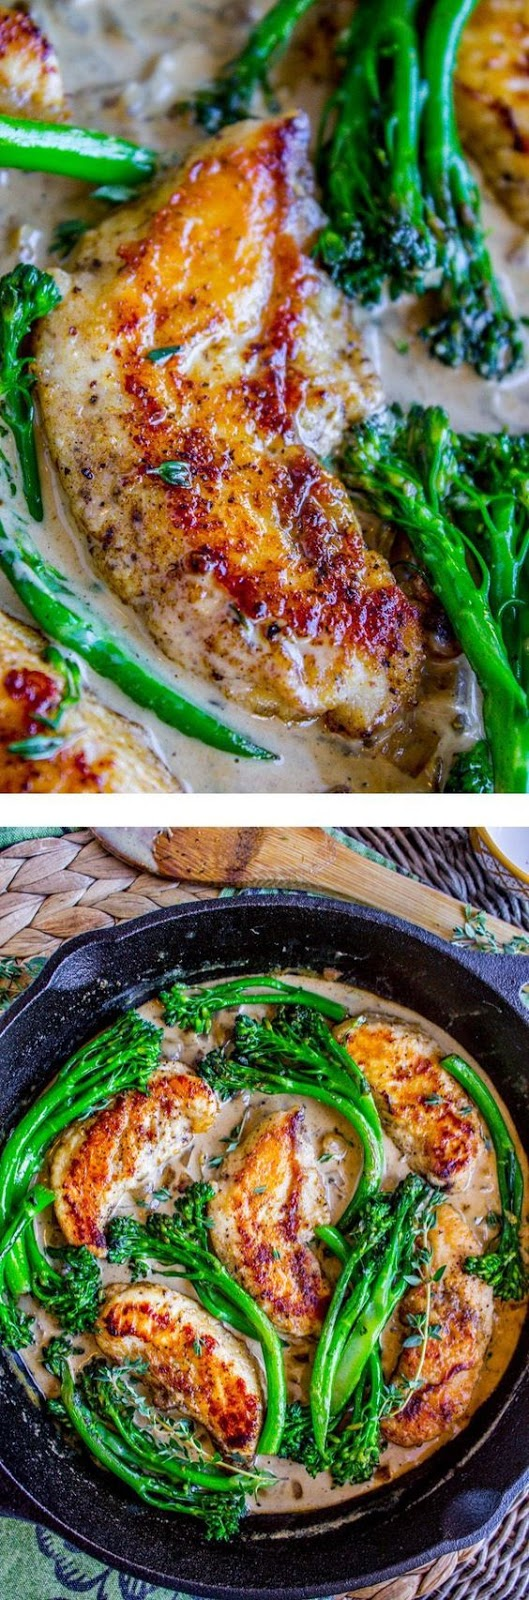 Pan-Seared Chicken and Broccolini in Creamy Mustard Sauce